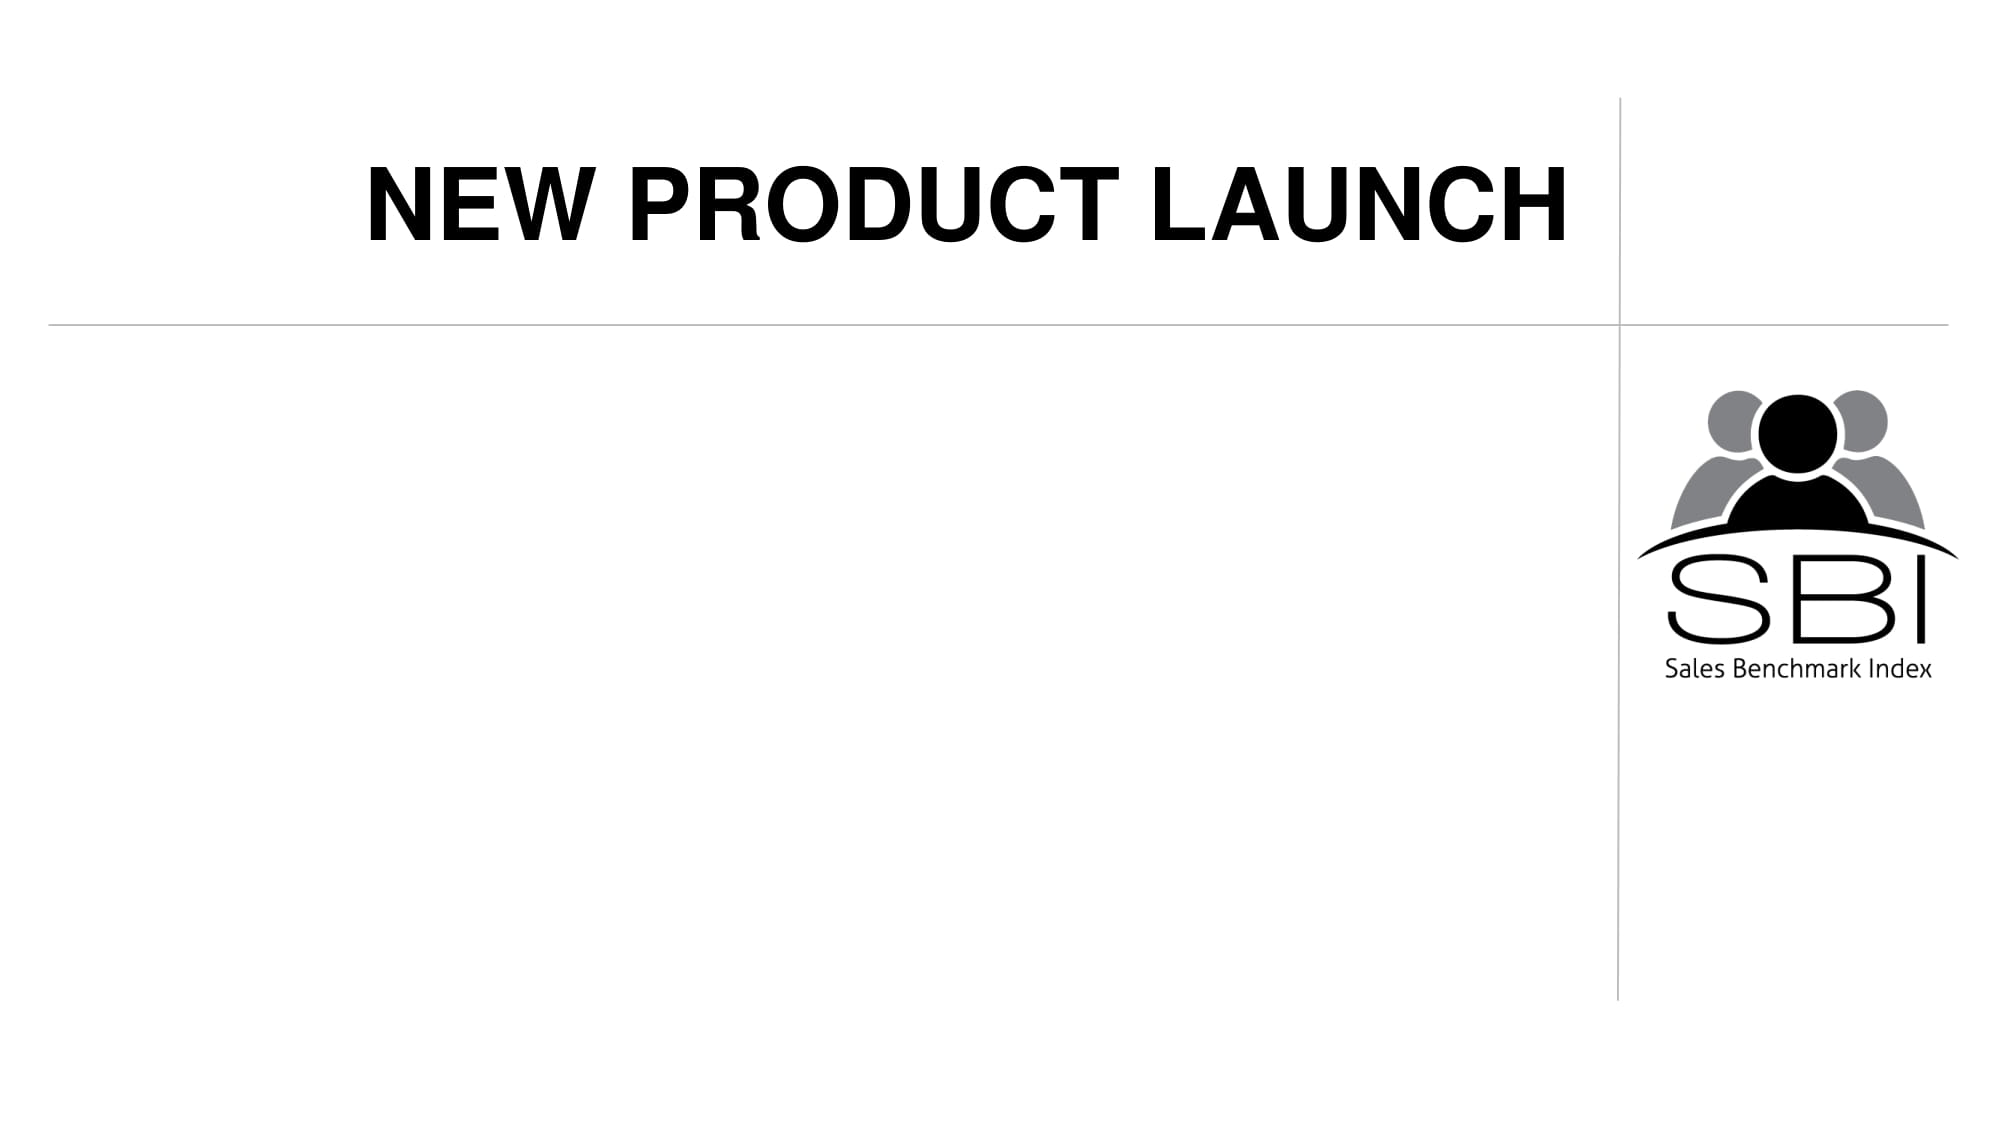 new product launch and financial analysis example